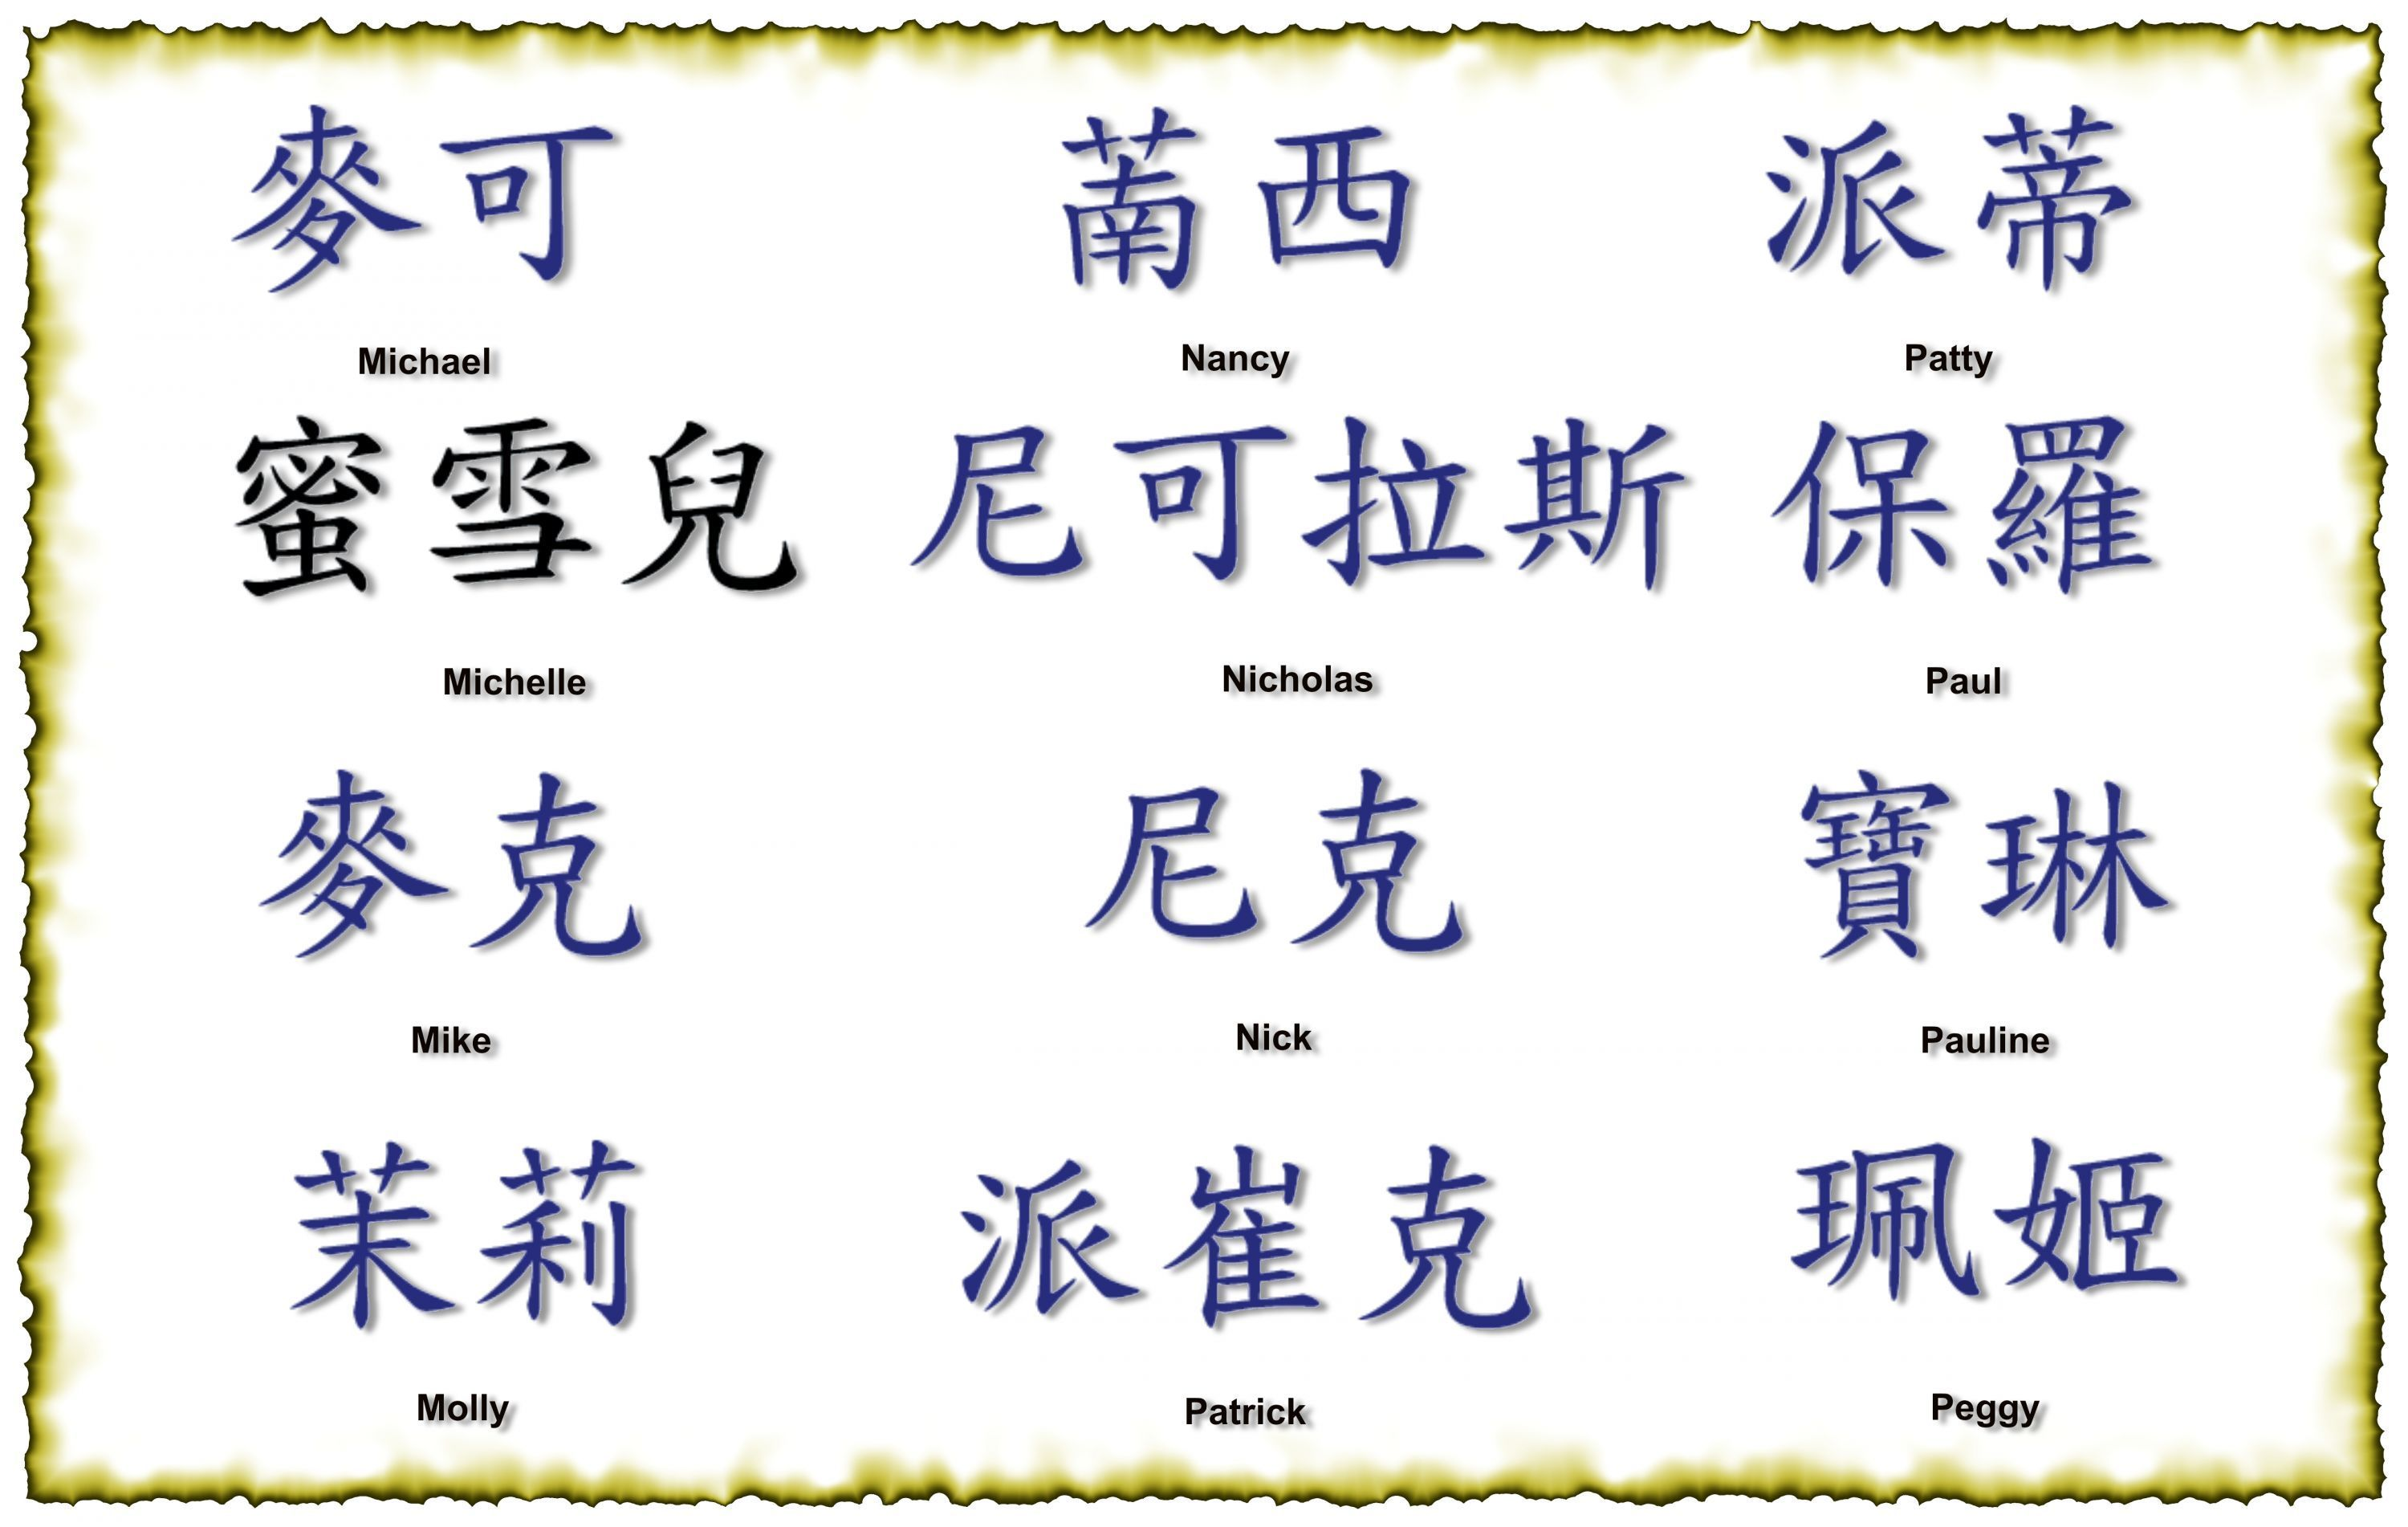 Chinese symbols tattoos have been very popular in the